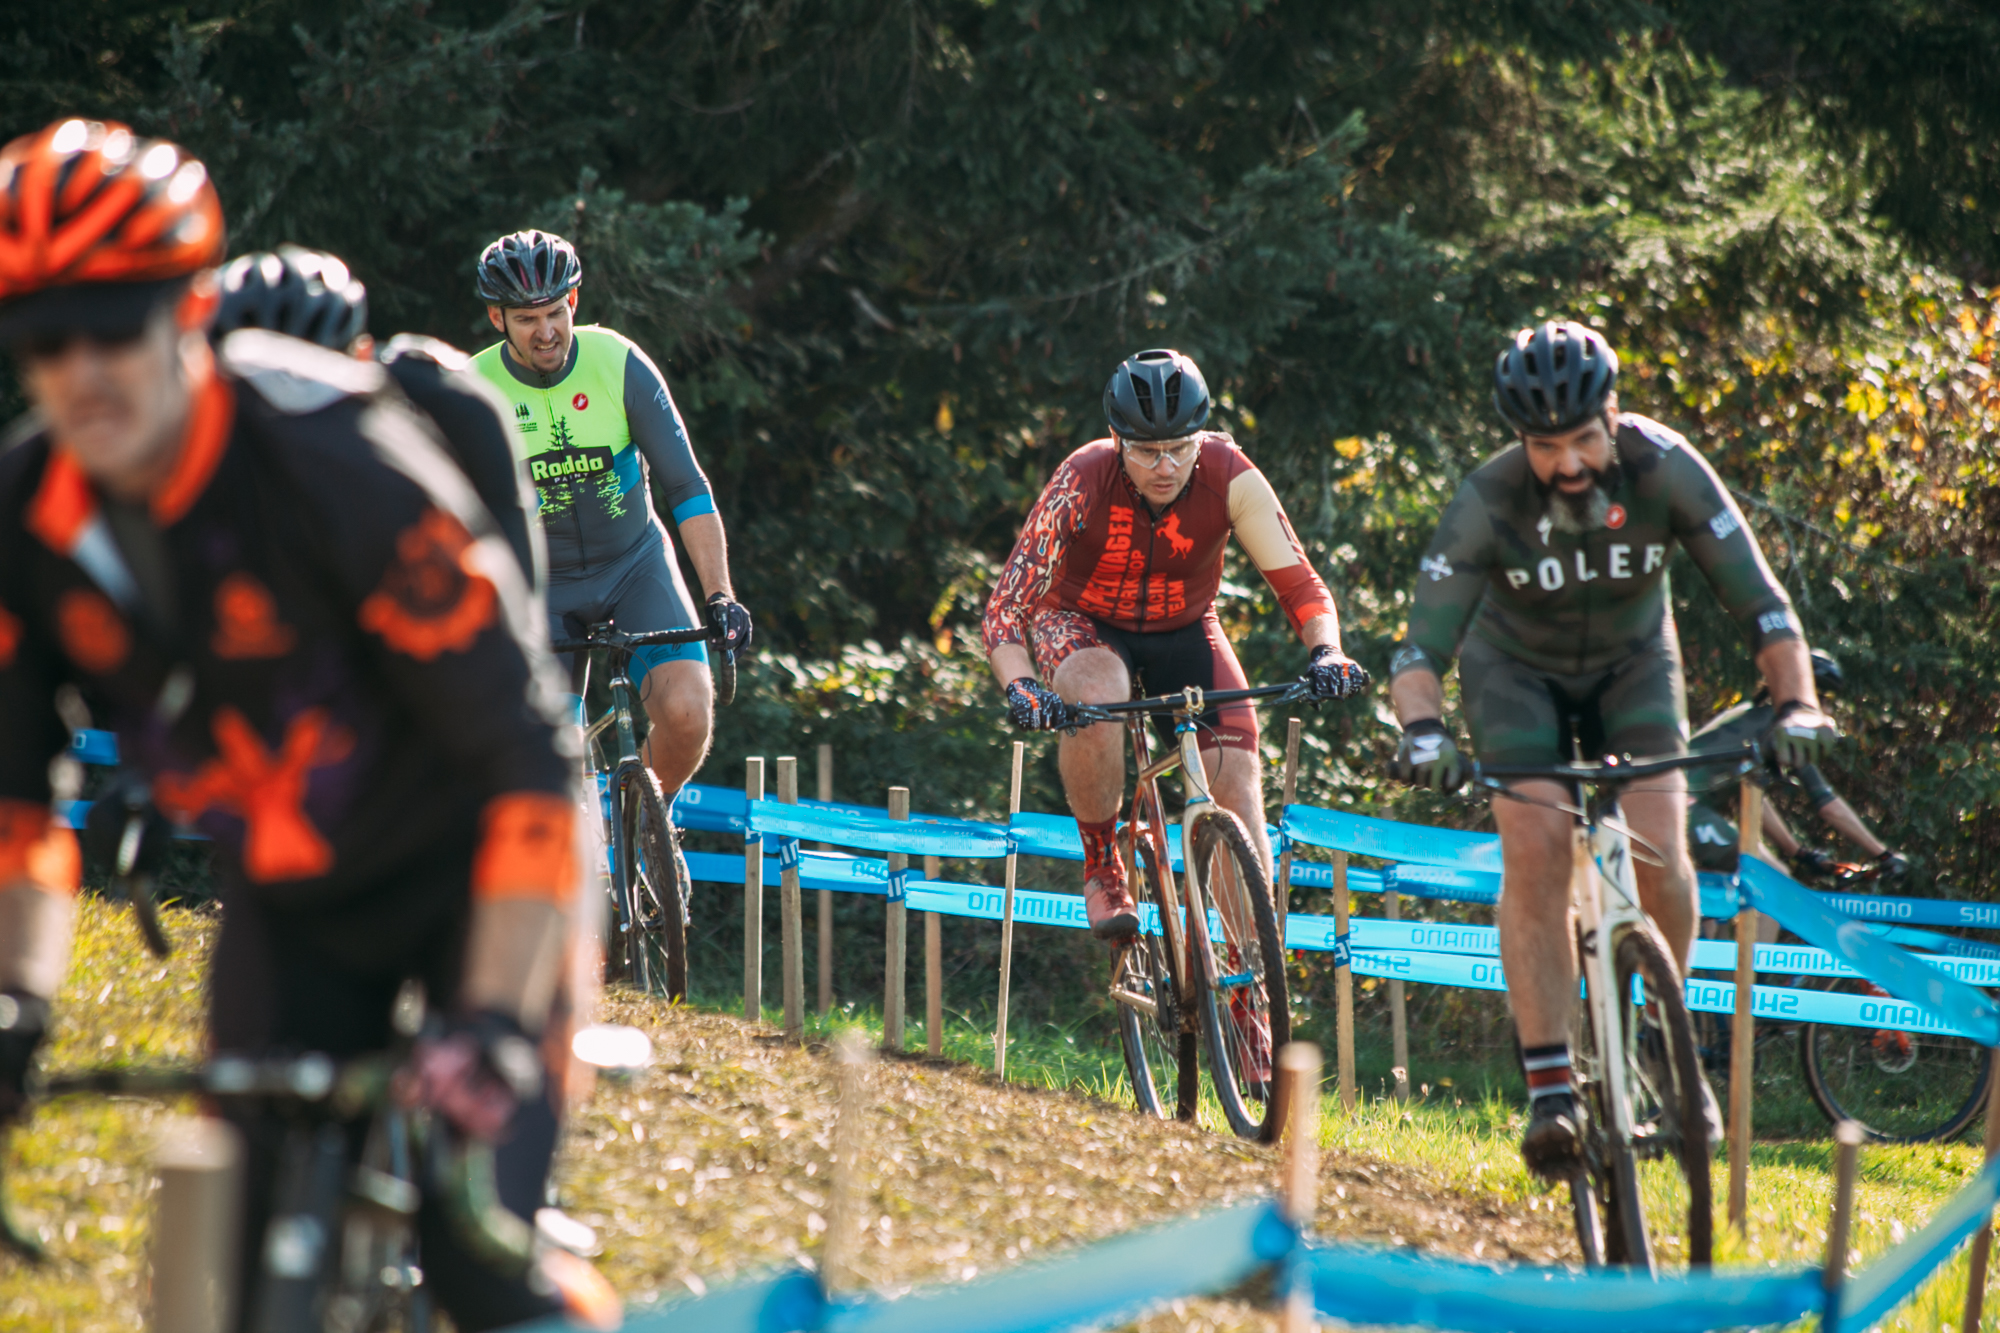 Cyclocross18_CCCX_RainierHS-105-mettlecycling.jpg